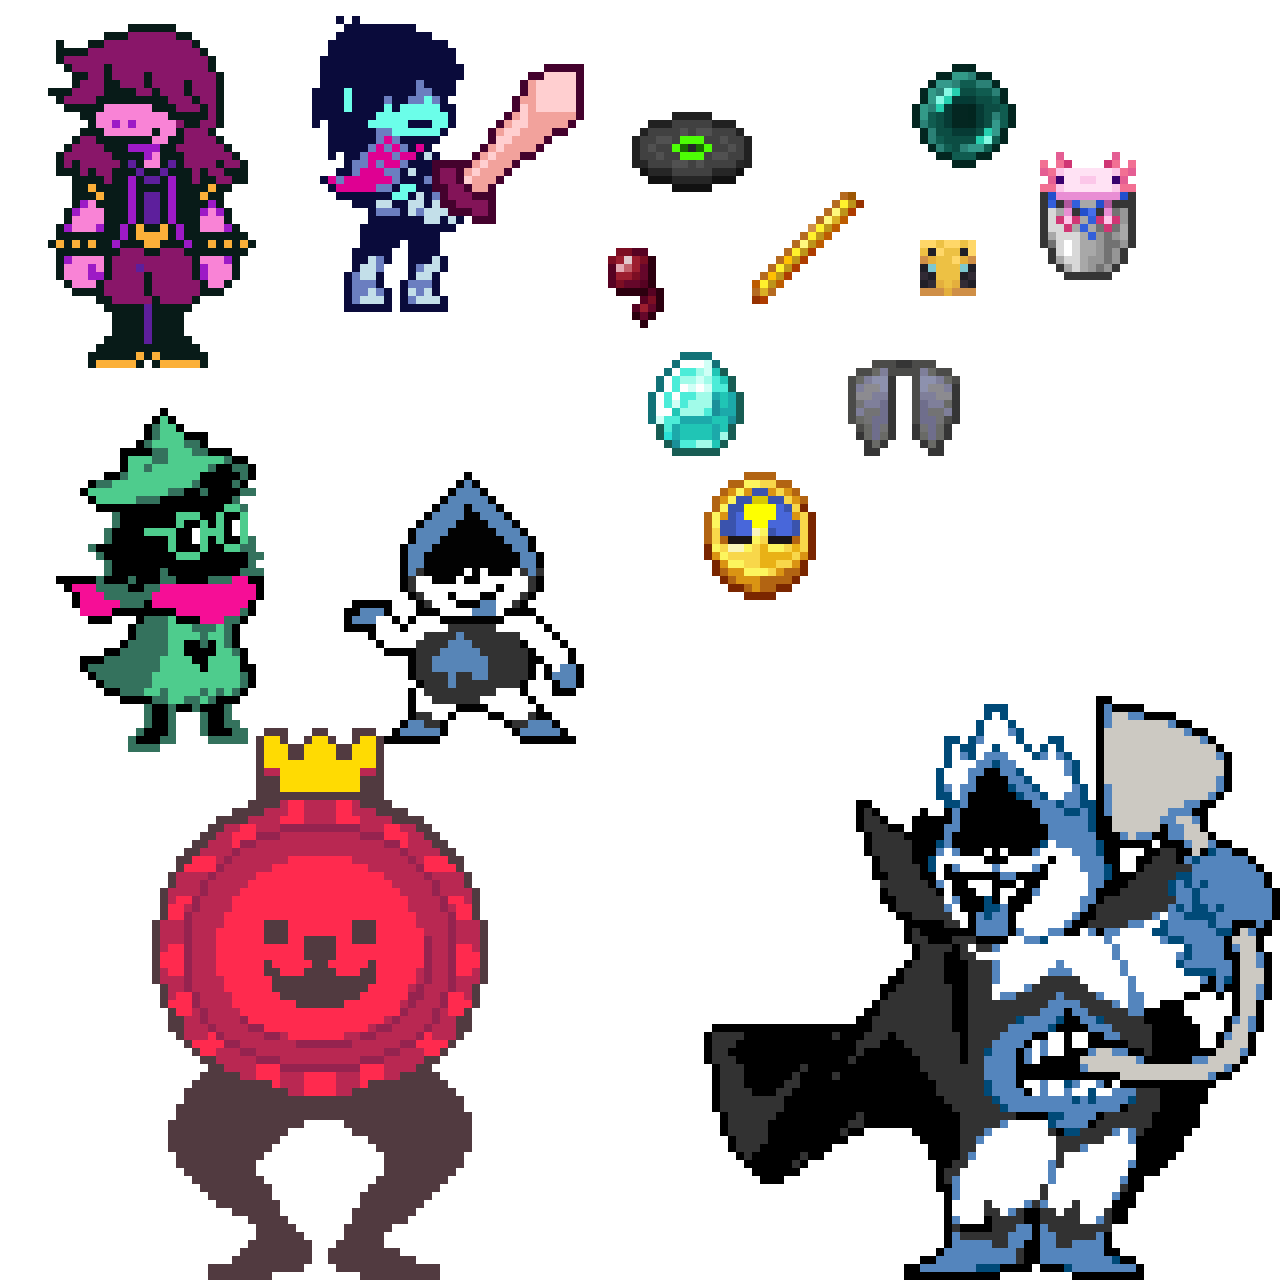 minecraft items and deltarune characters